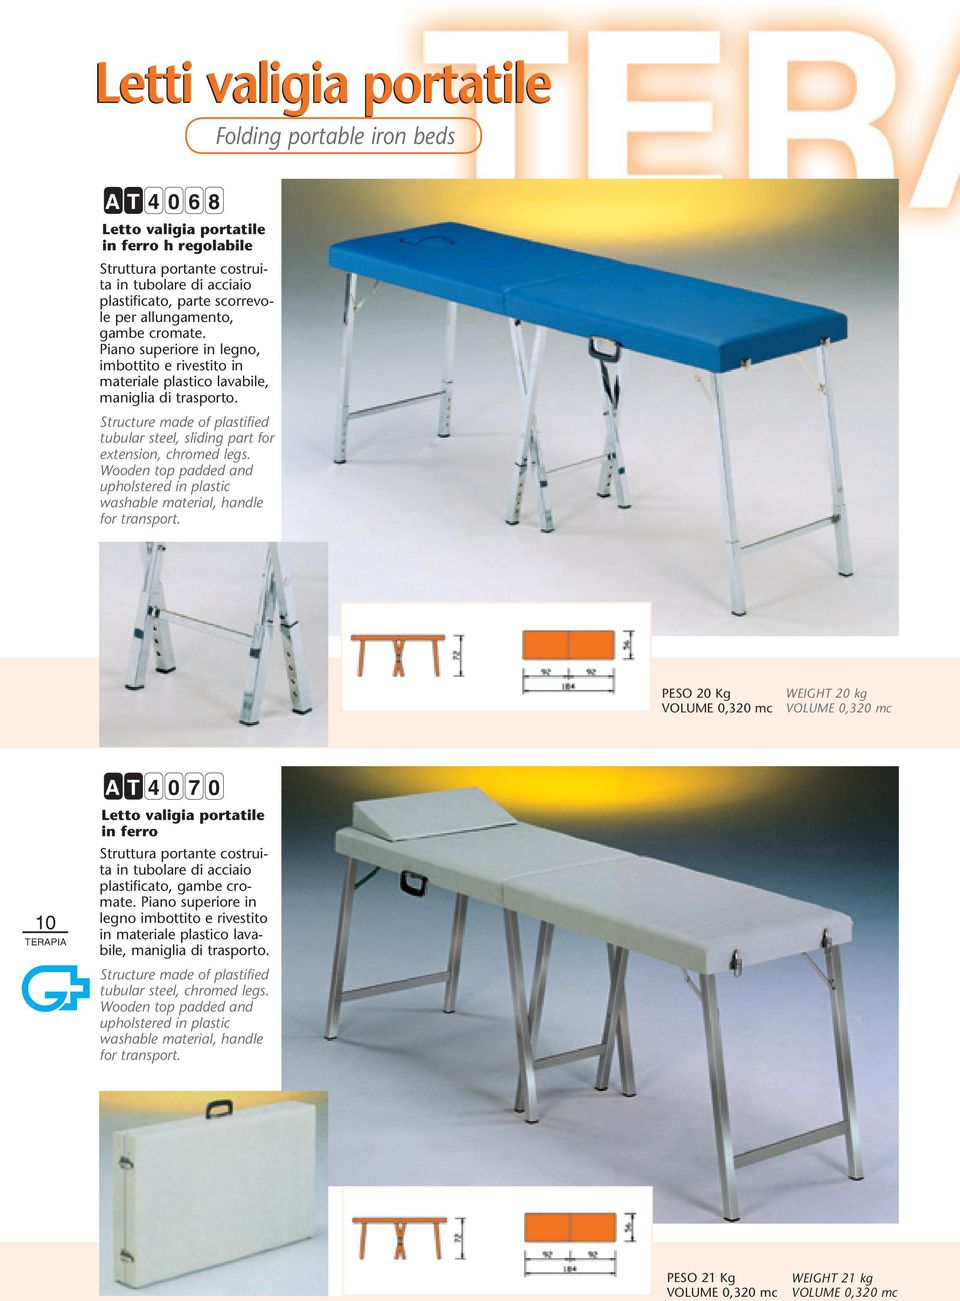 Structure made of plastified tubular steel, sliding part for extension, chromed legs. Wooden top padded and upholstered in plastic washable material, handle for transport.